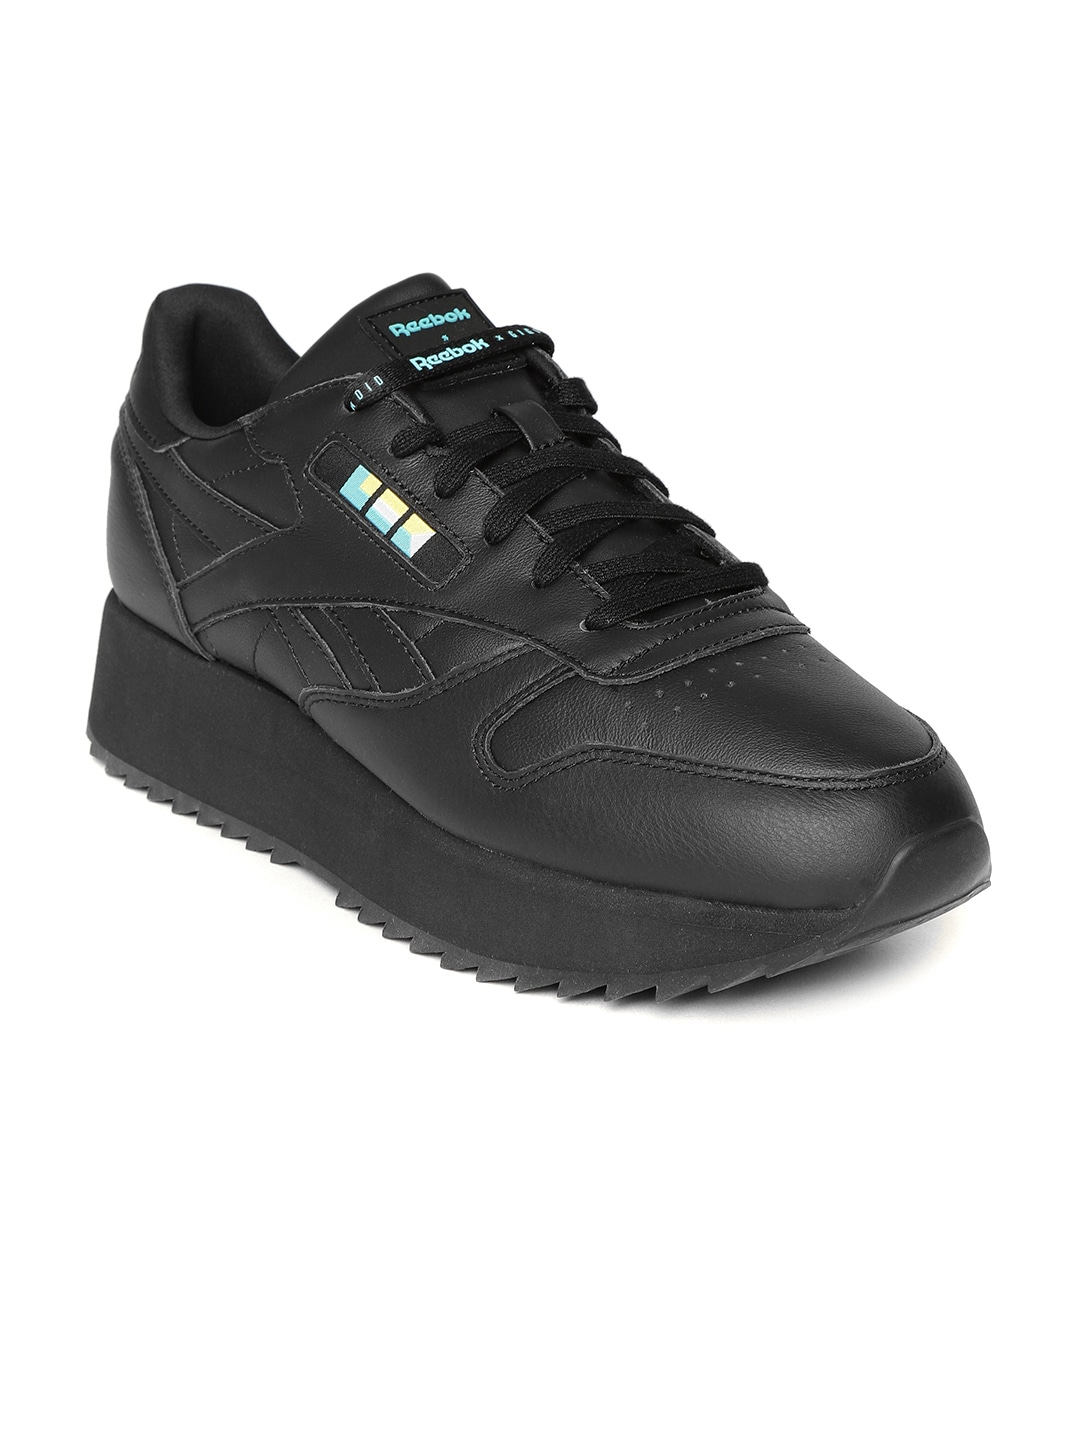 15356c0bf55 Reebok Leather Shoes - Buy Reebok Leather Shoes online in India